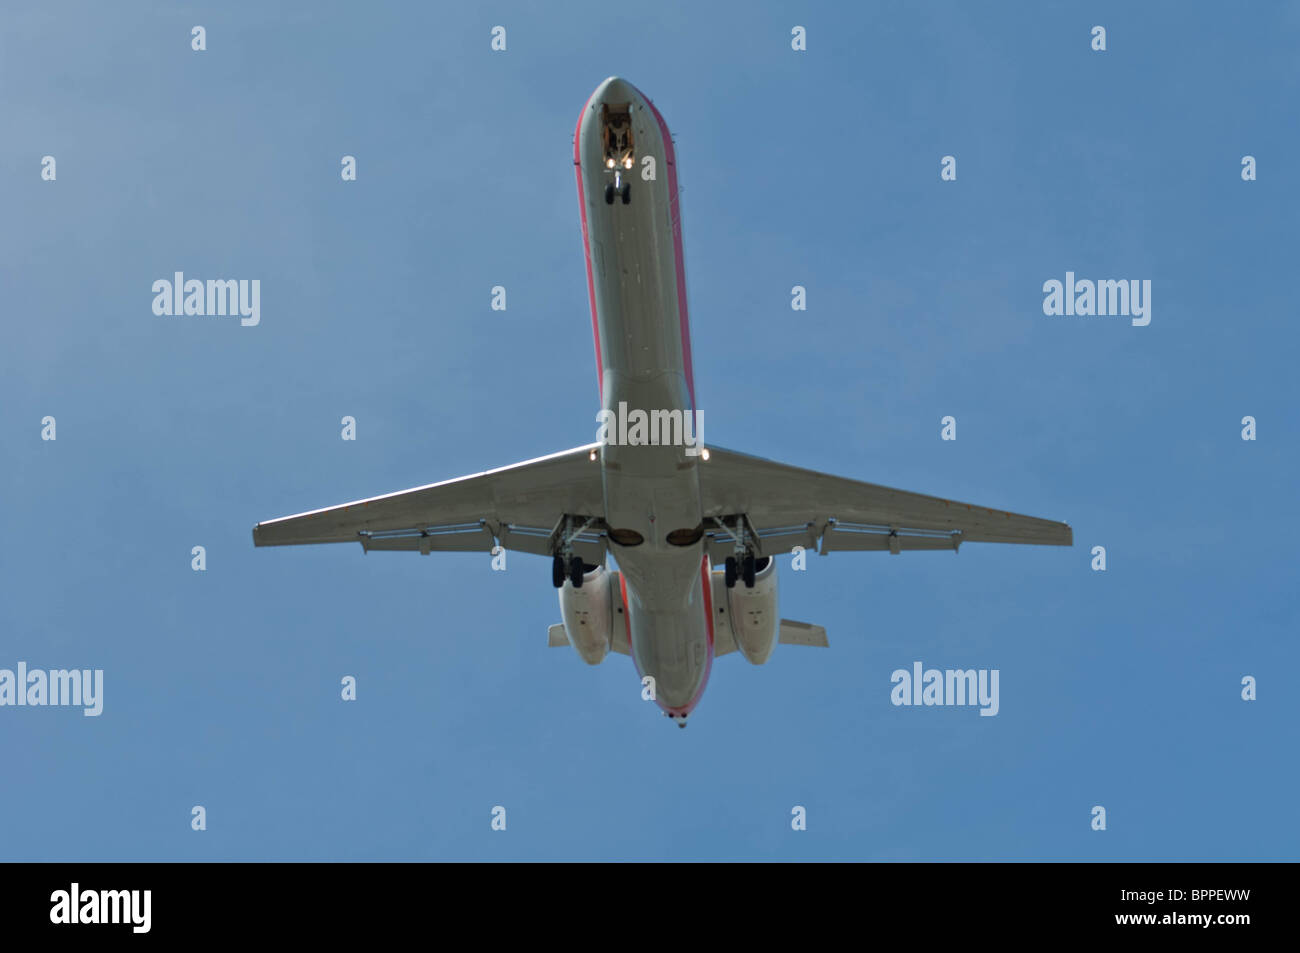 Underside of a passenger jet on a landing approach to a runway with landing gear in the down position. - Stock Image